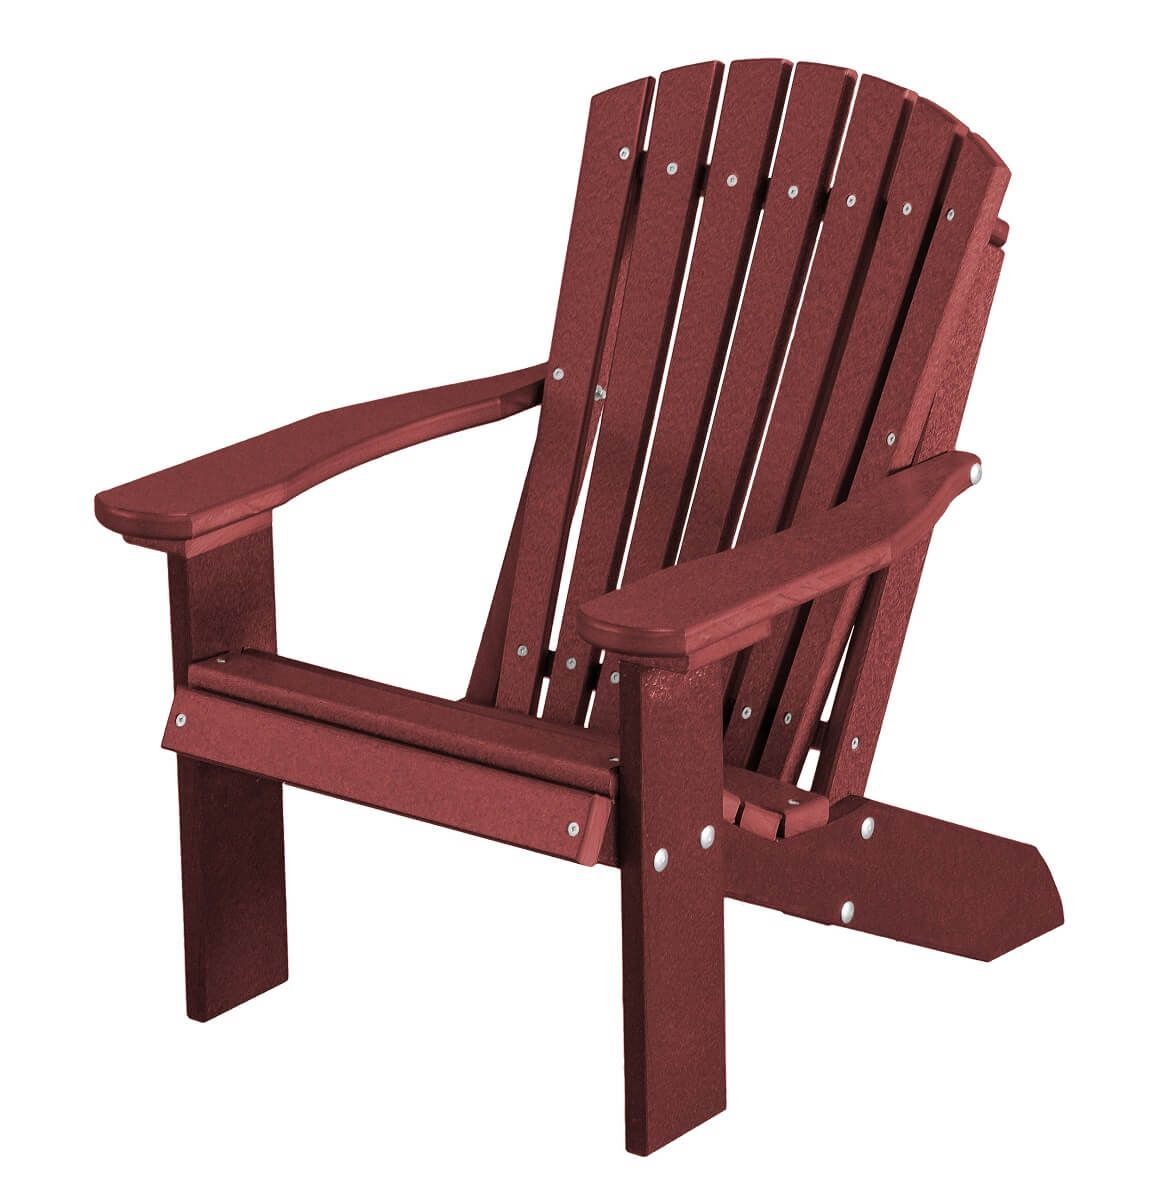 Cherry Wood Sidra Child's Adirondack Chair